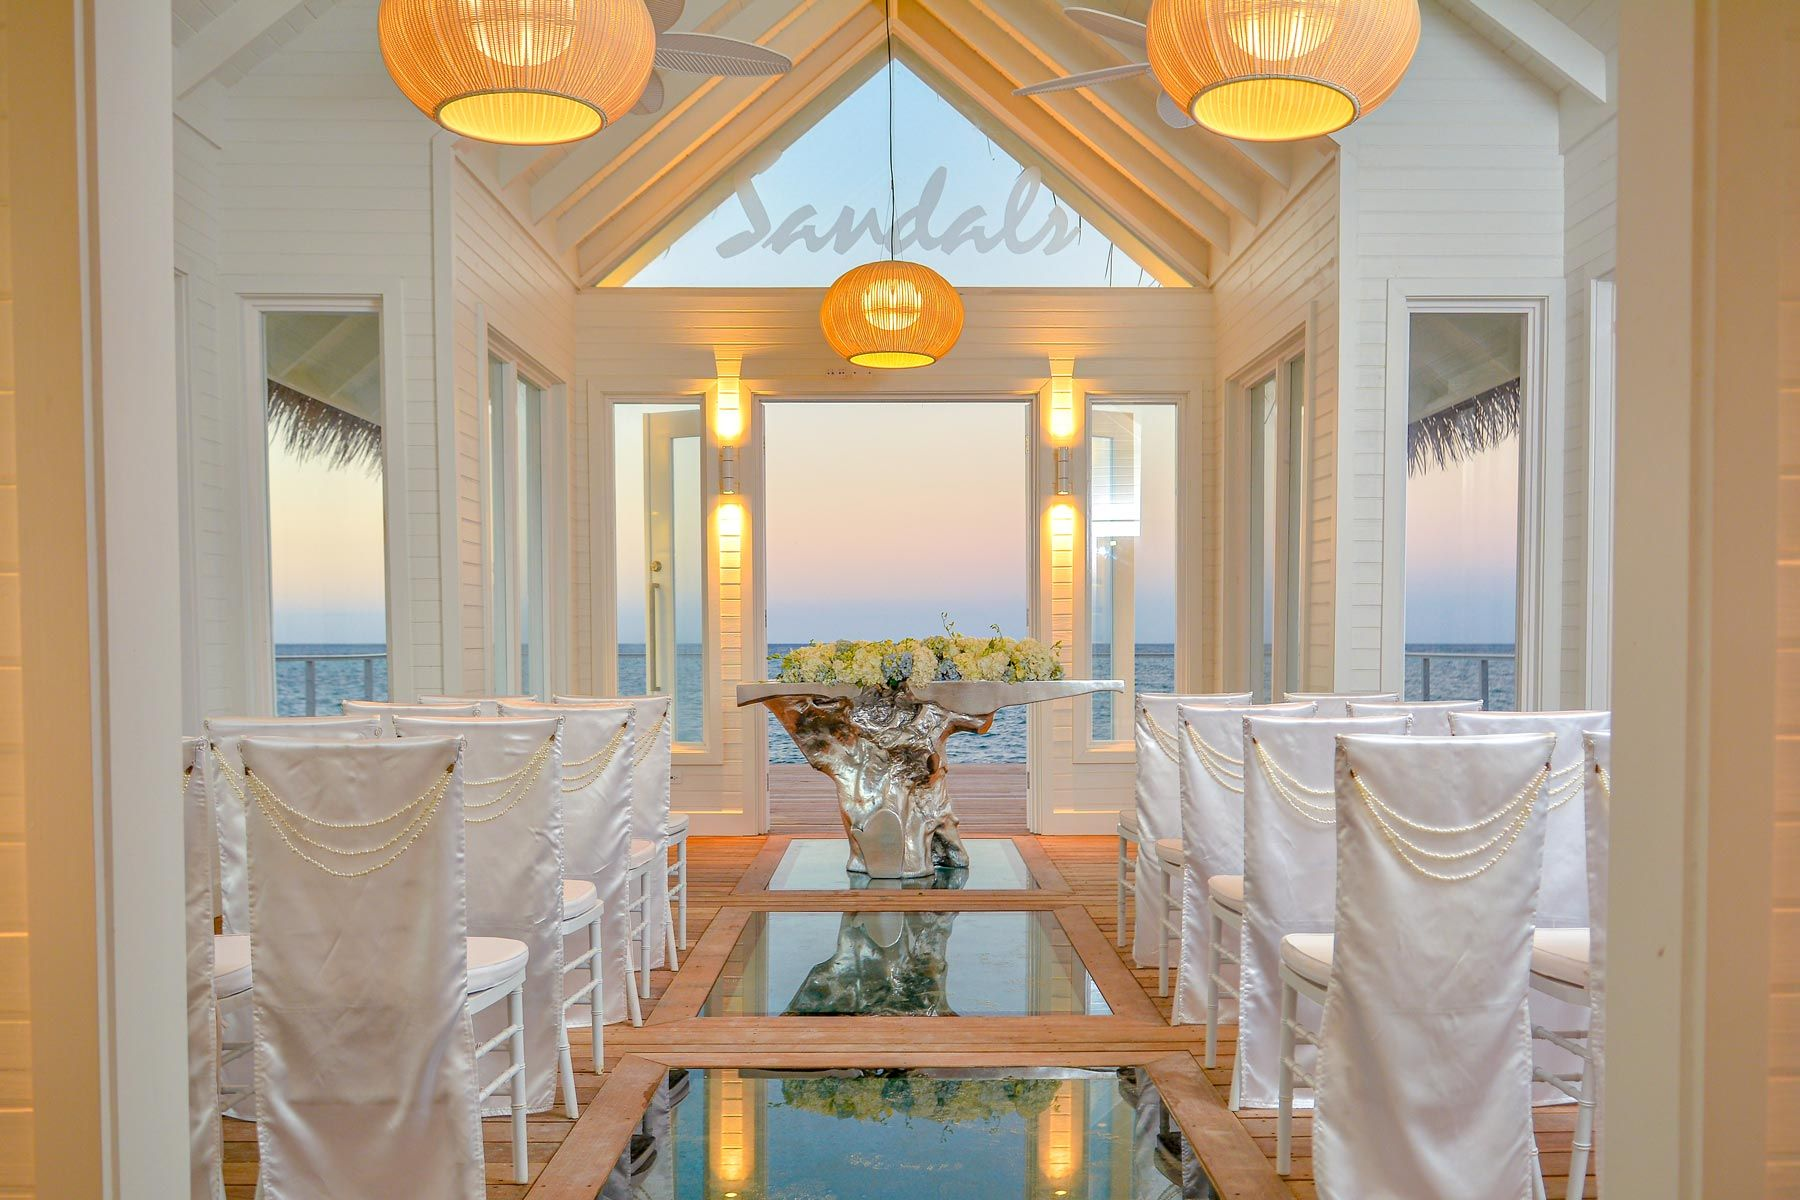 Sandals Montego Bay SMB Over The Water Chapel Interior